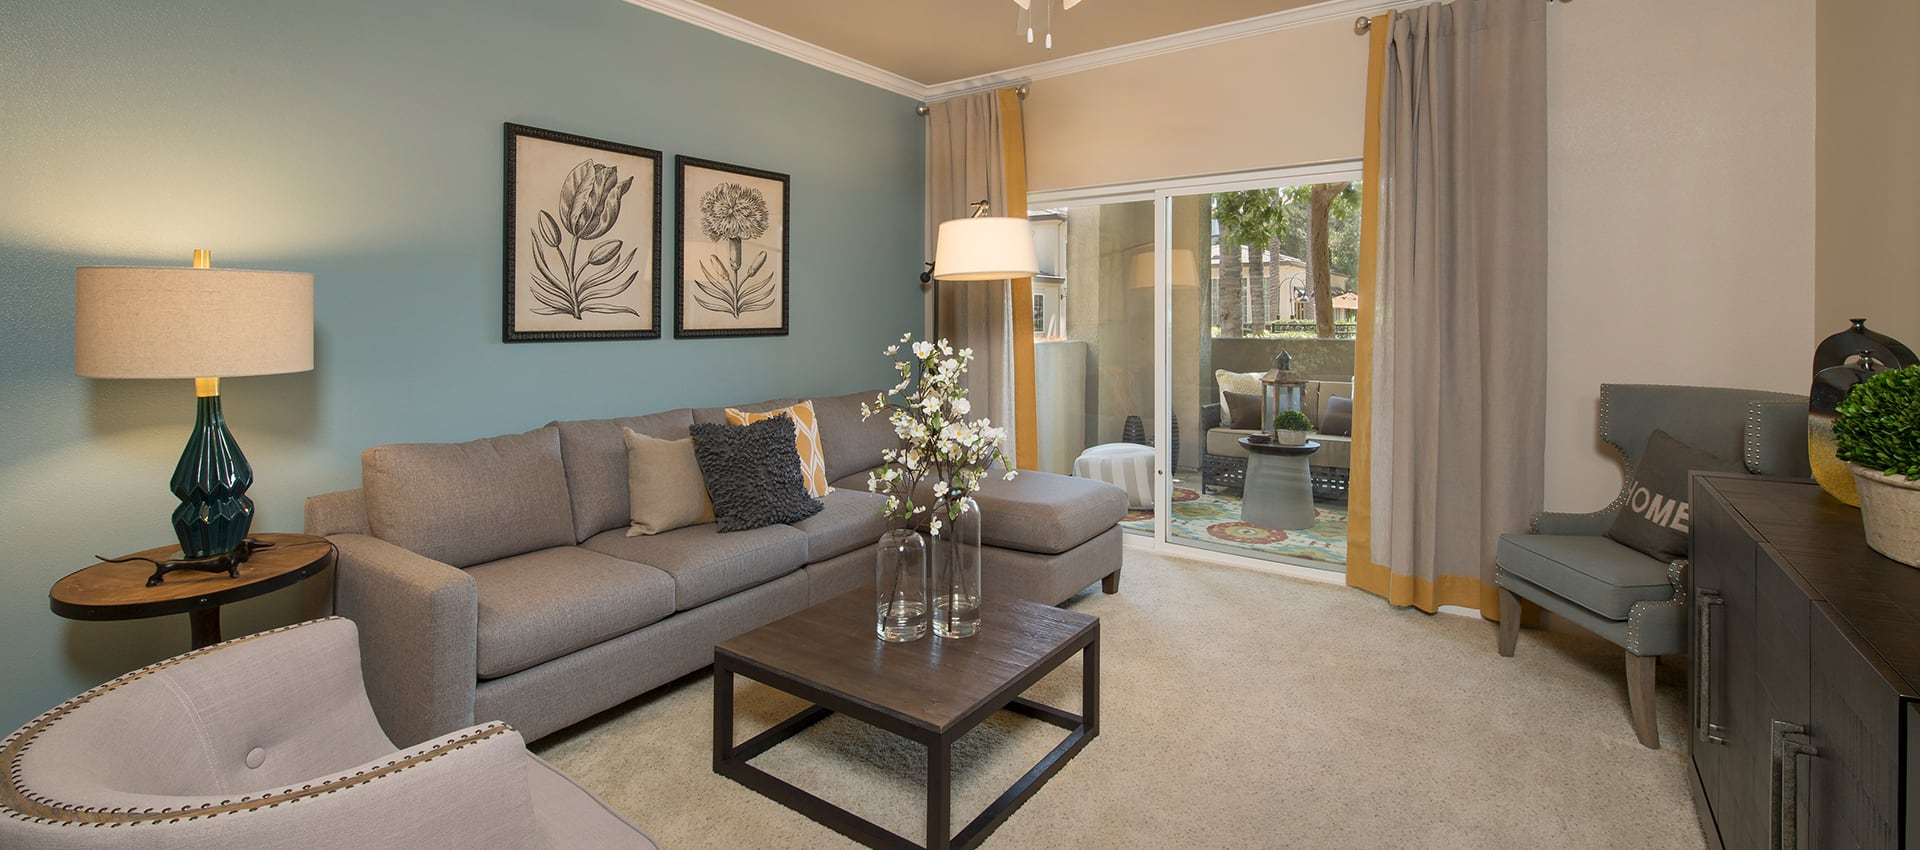 Spacious living room with sliding glass door at Esplanade Apartment Homes in Riverside, California